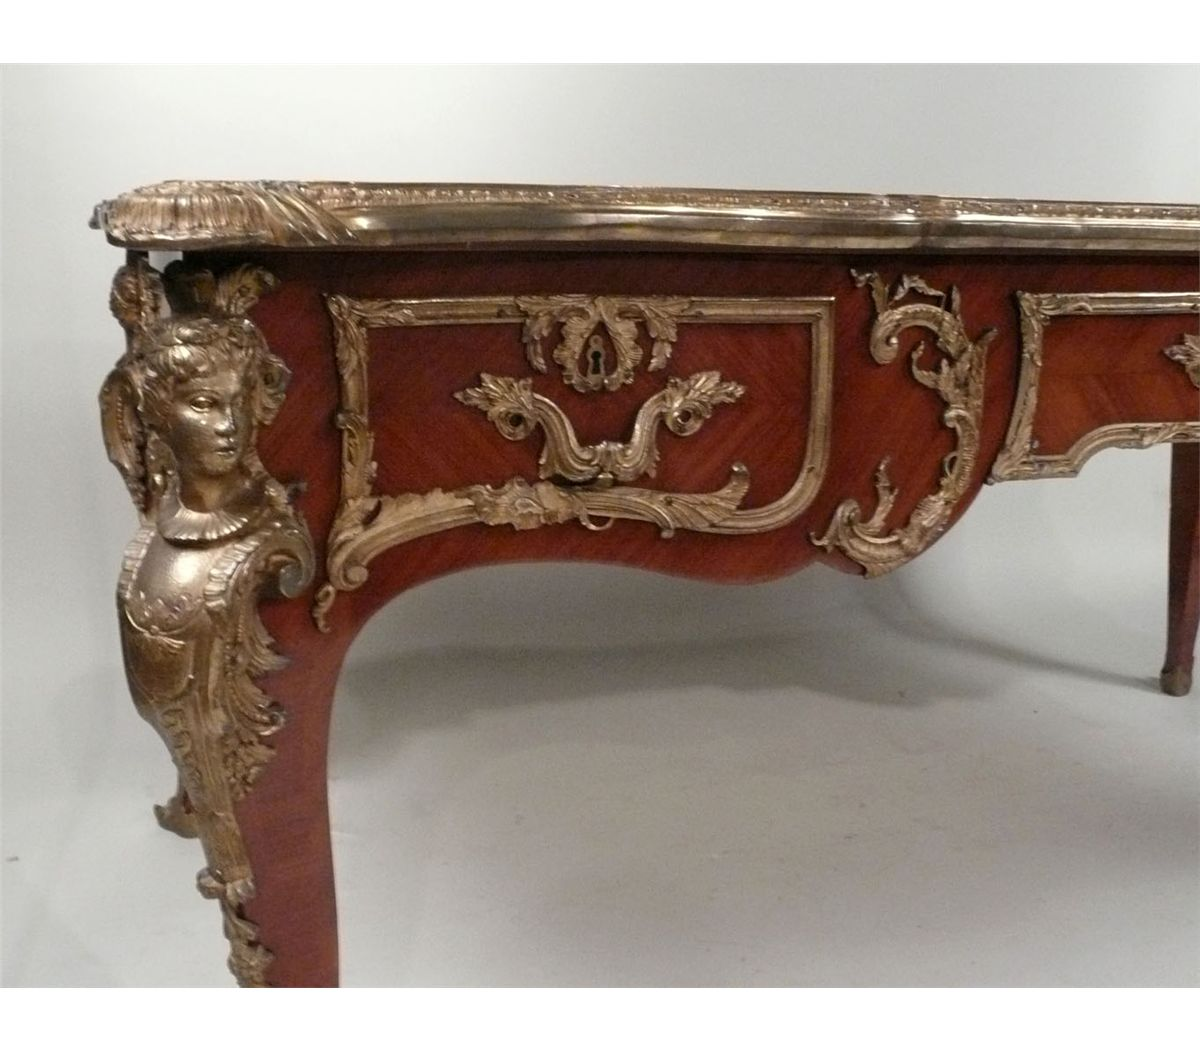 louis xv style gilt bronze mounted mahogany bureau plat 20th c n9enae. Black Bedroom Furniture Sets. Home Design Ideas